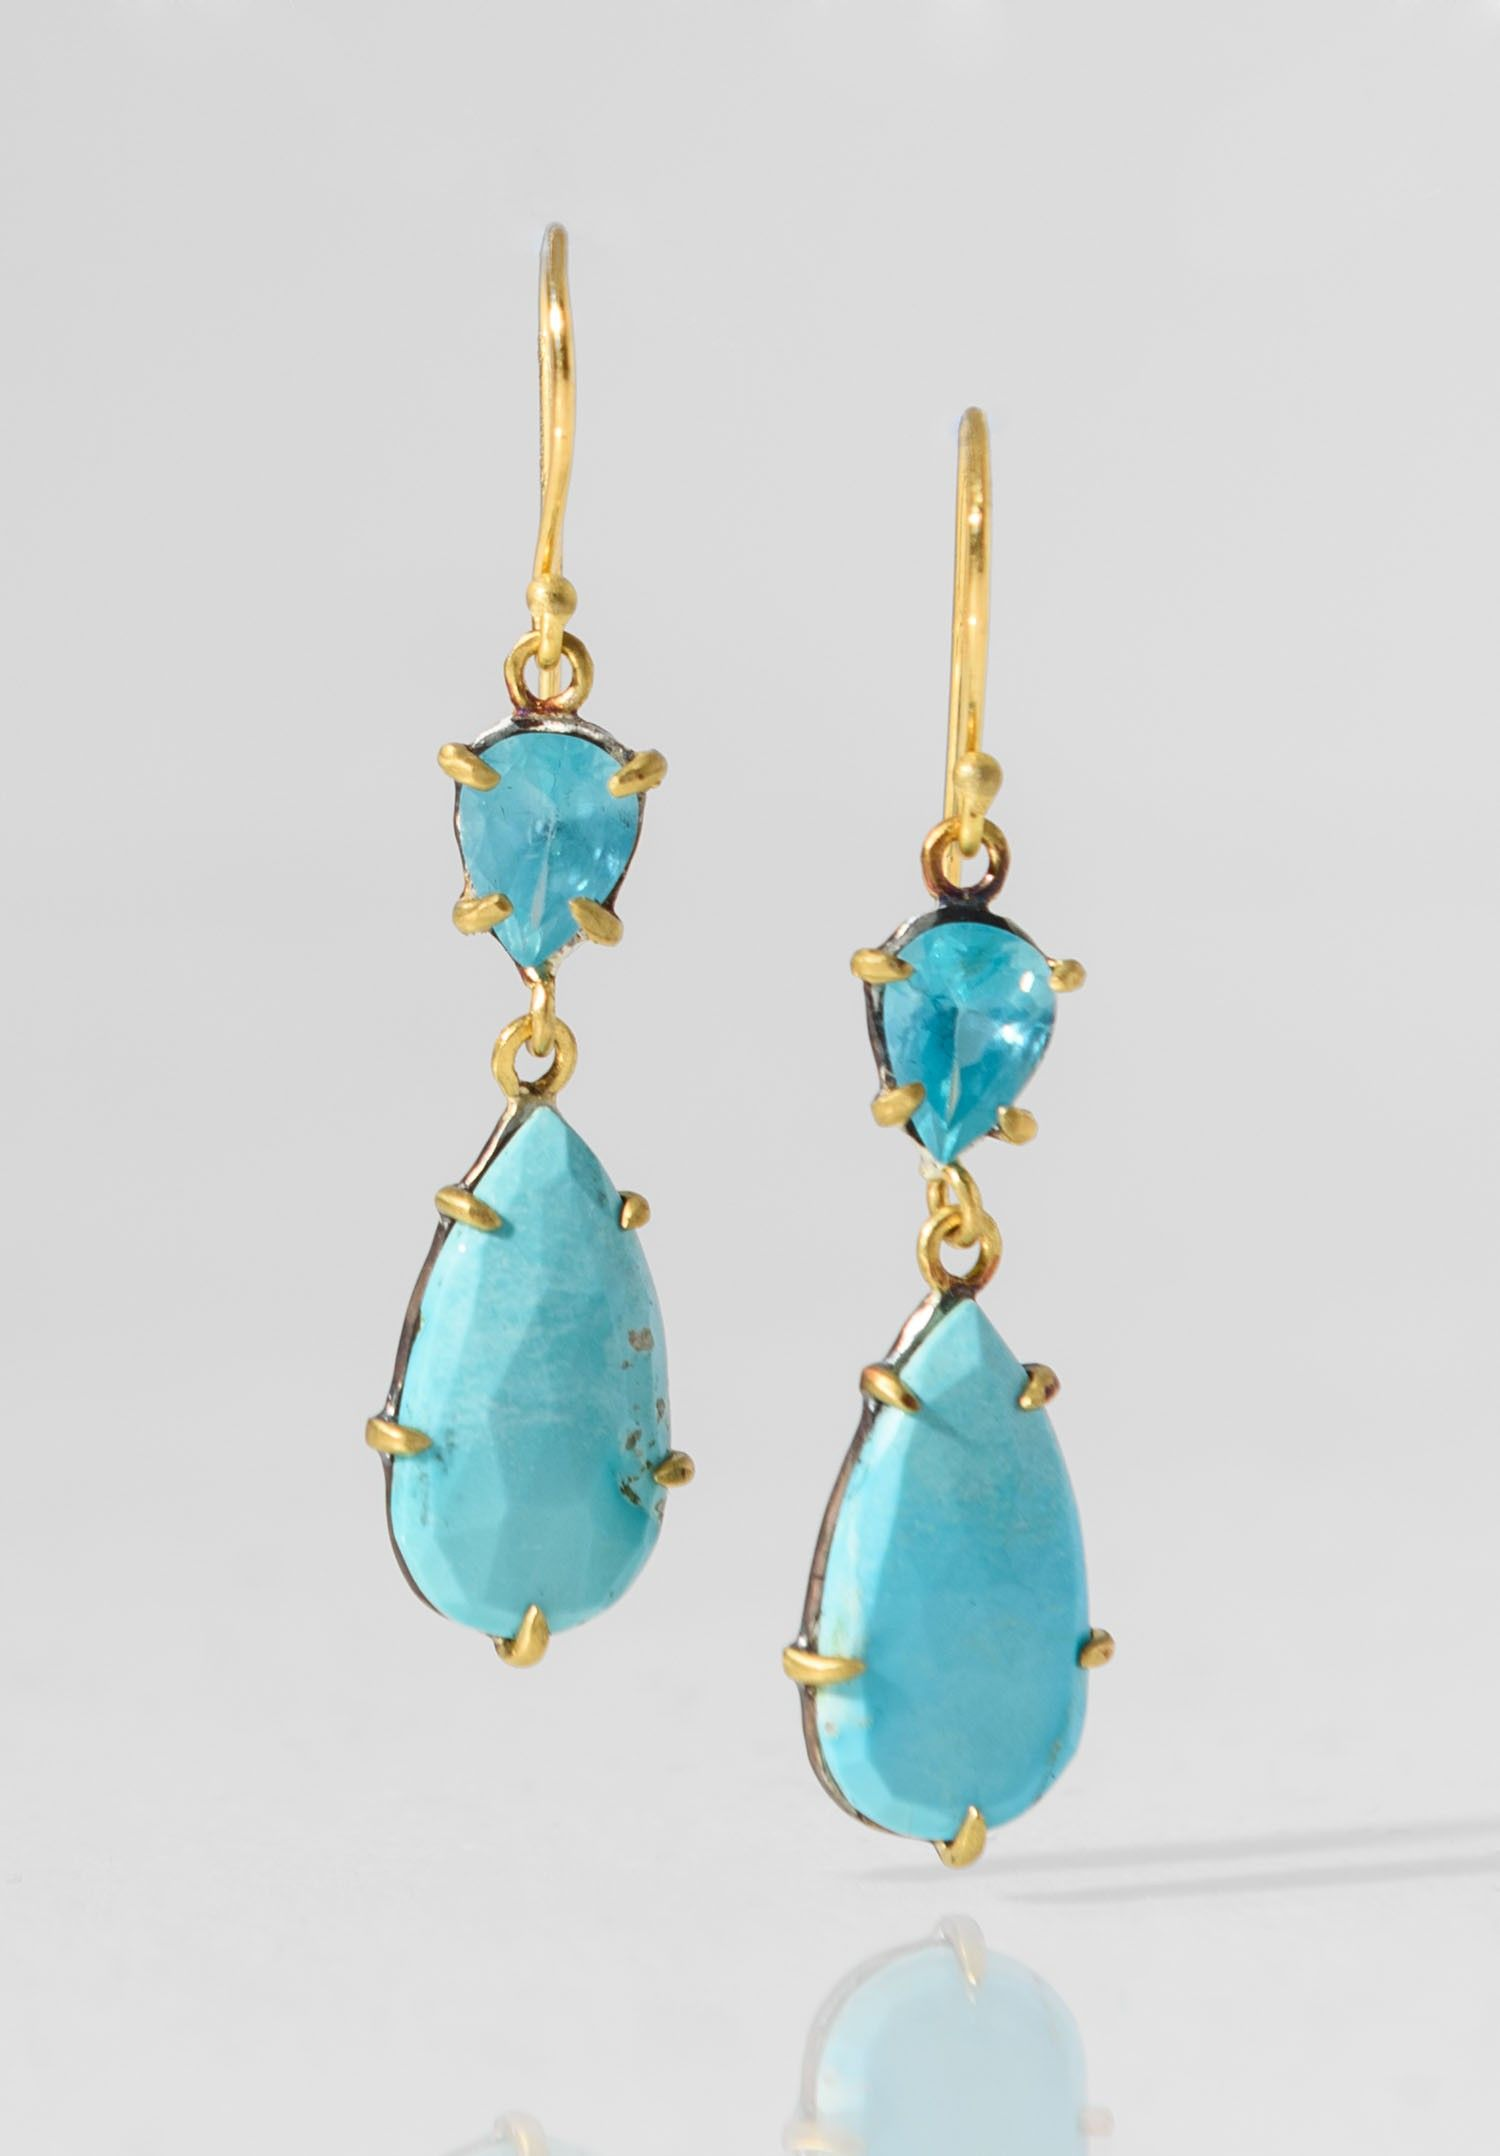 product rippleearringscover leoben jewelry ripple handmade apatite gemstone earrings